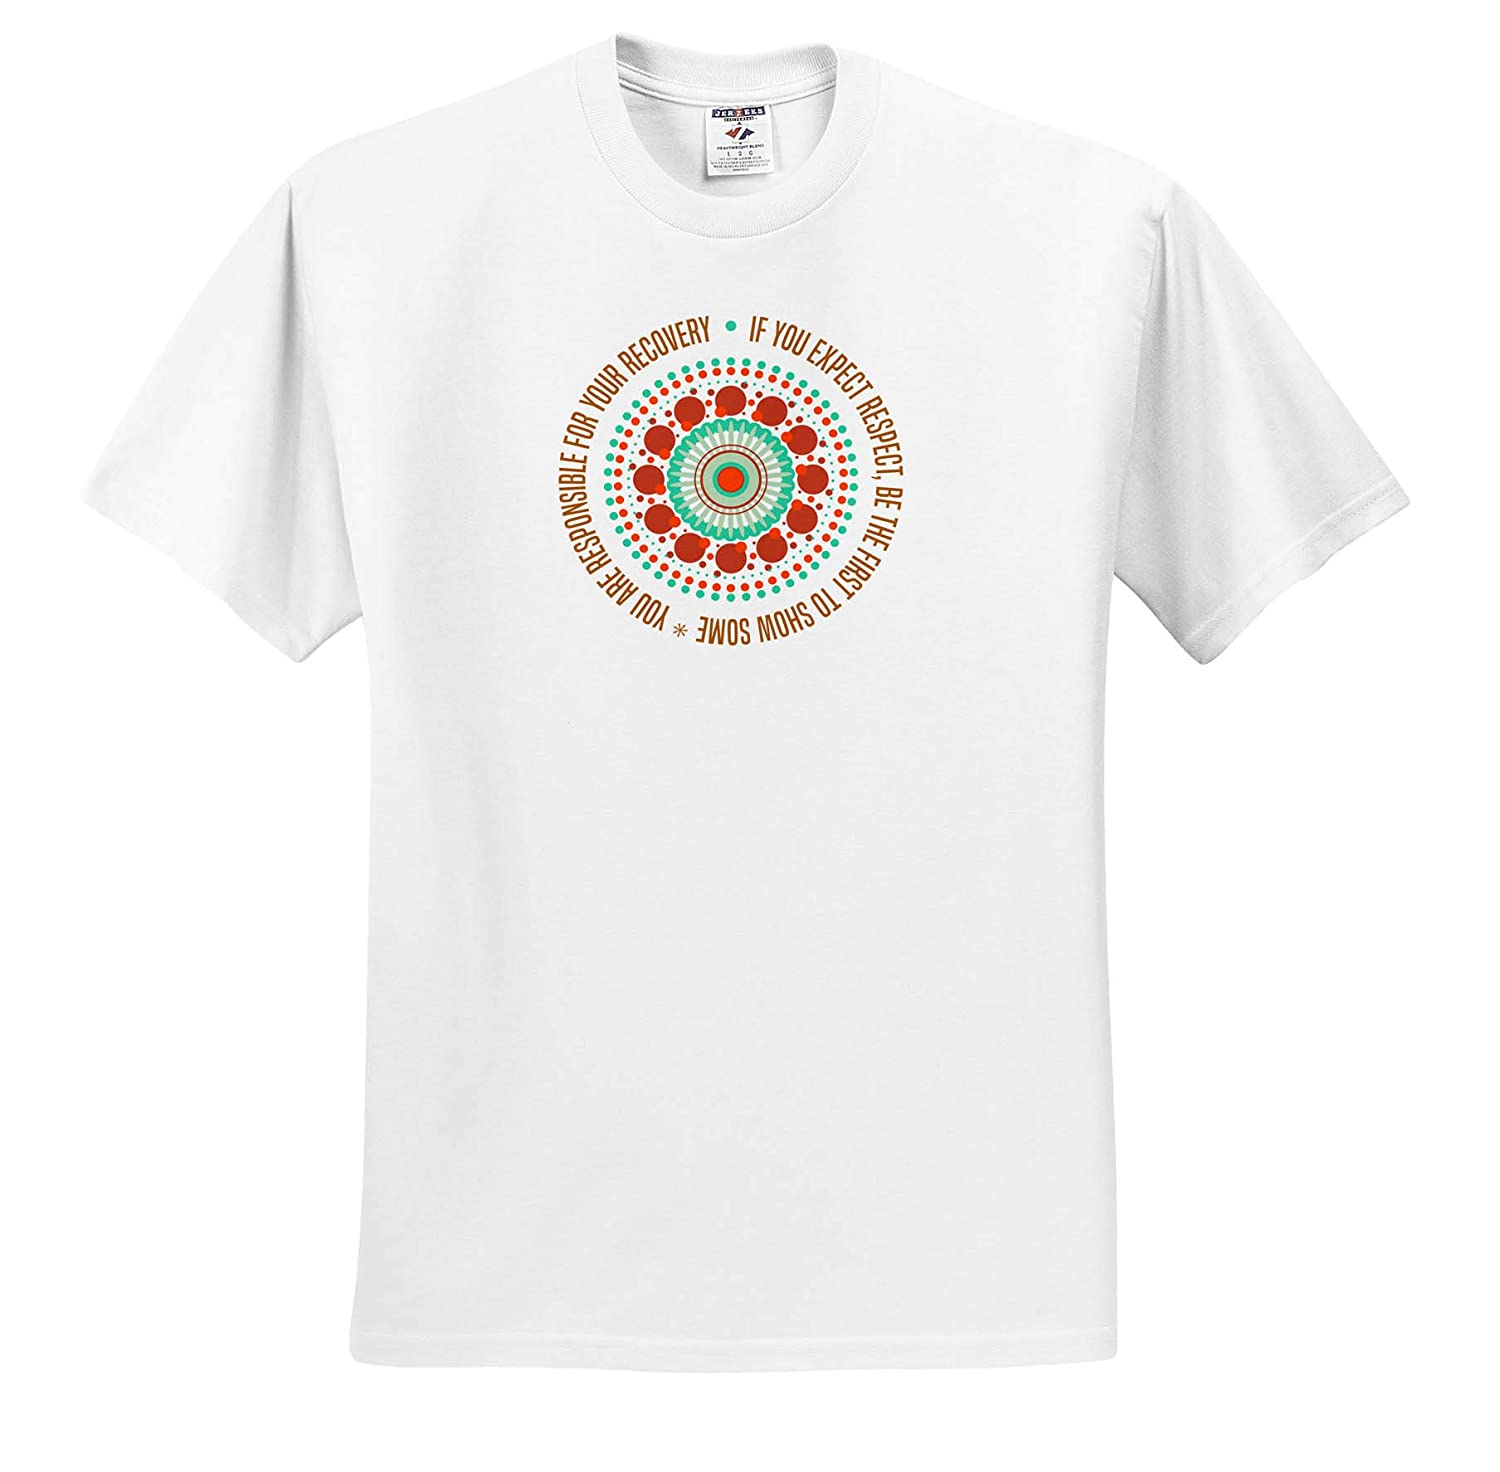 Red T-Shirts Around 3dRose Alexis Design Motivational and 12 Steps Turquoise Mandala and a Text If You Expect Respect